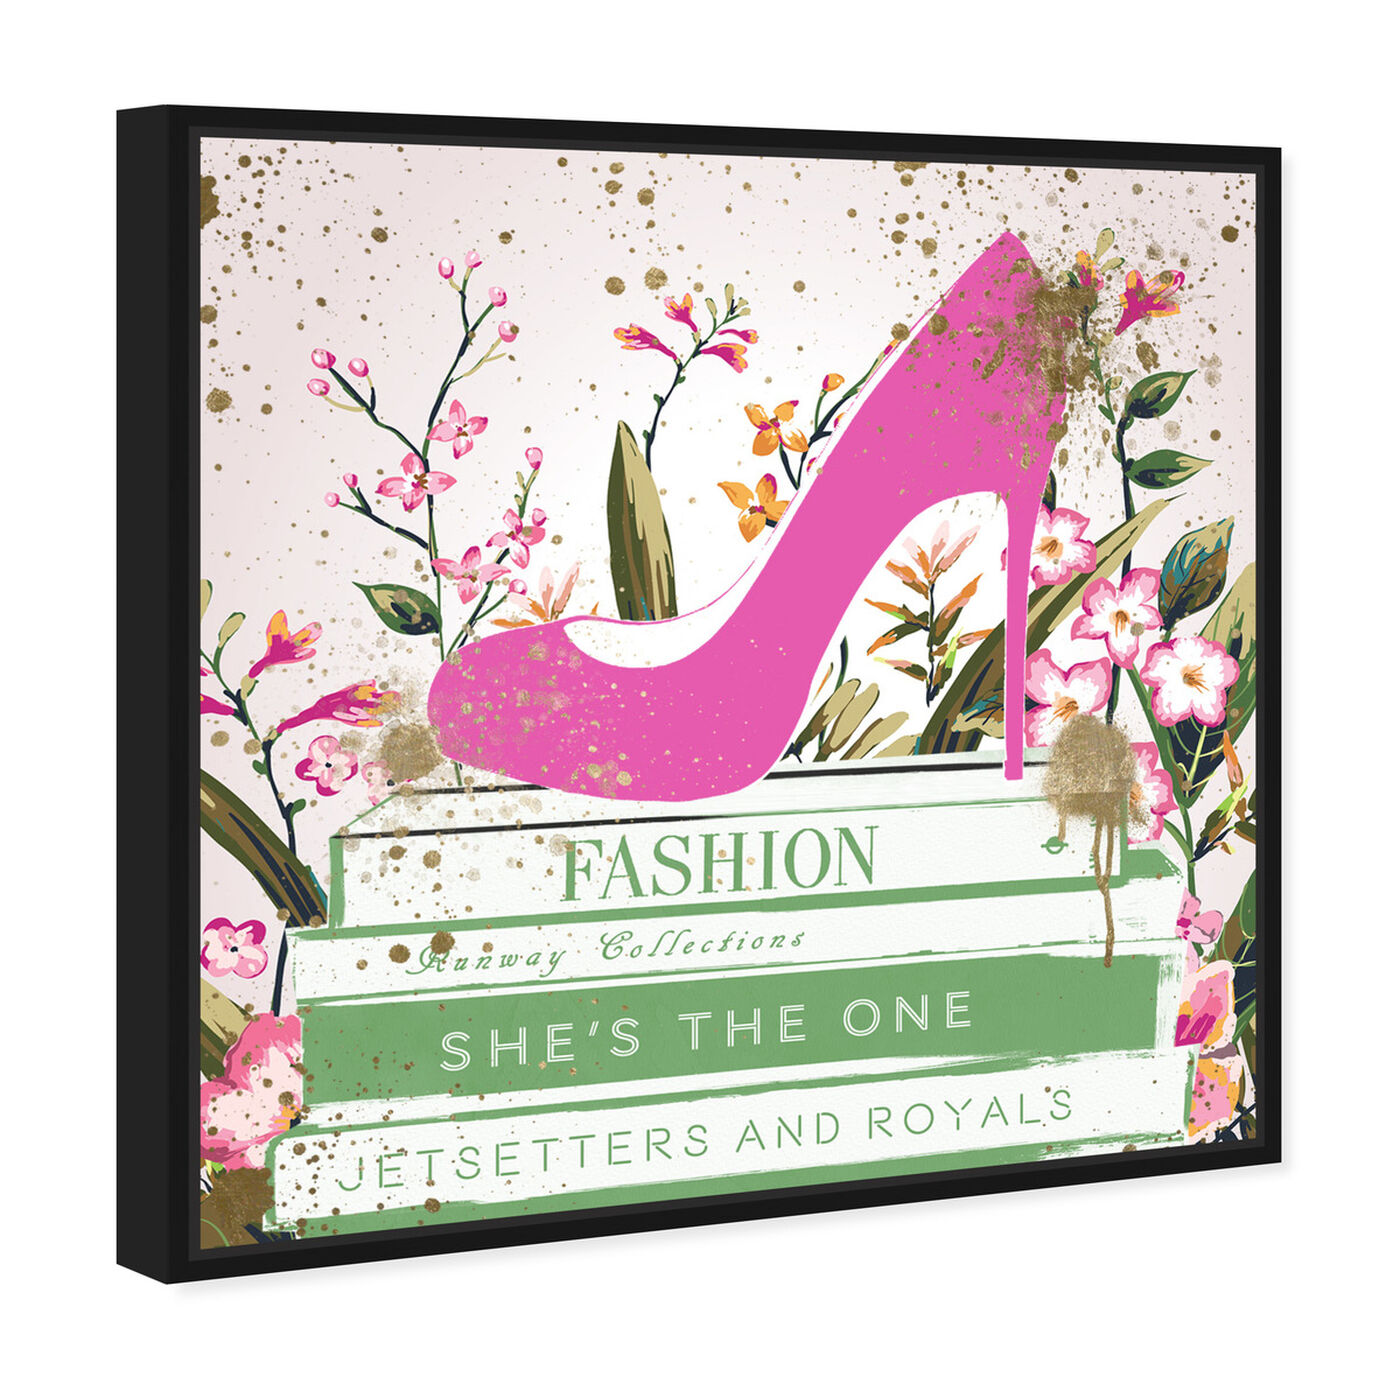 Angled view of Shoes and Books Spring featuring fashion and glam and shoes art.